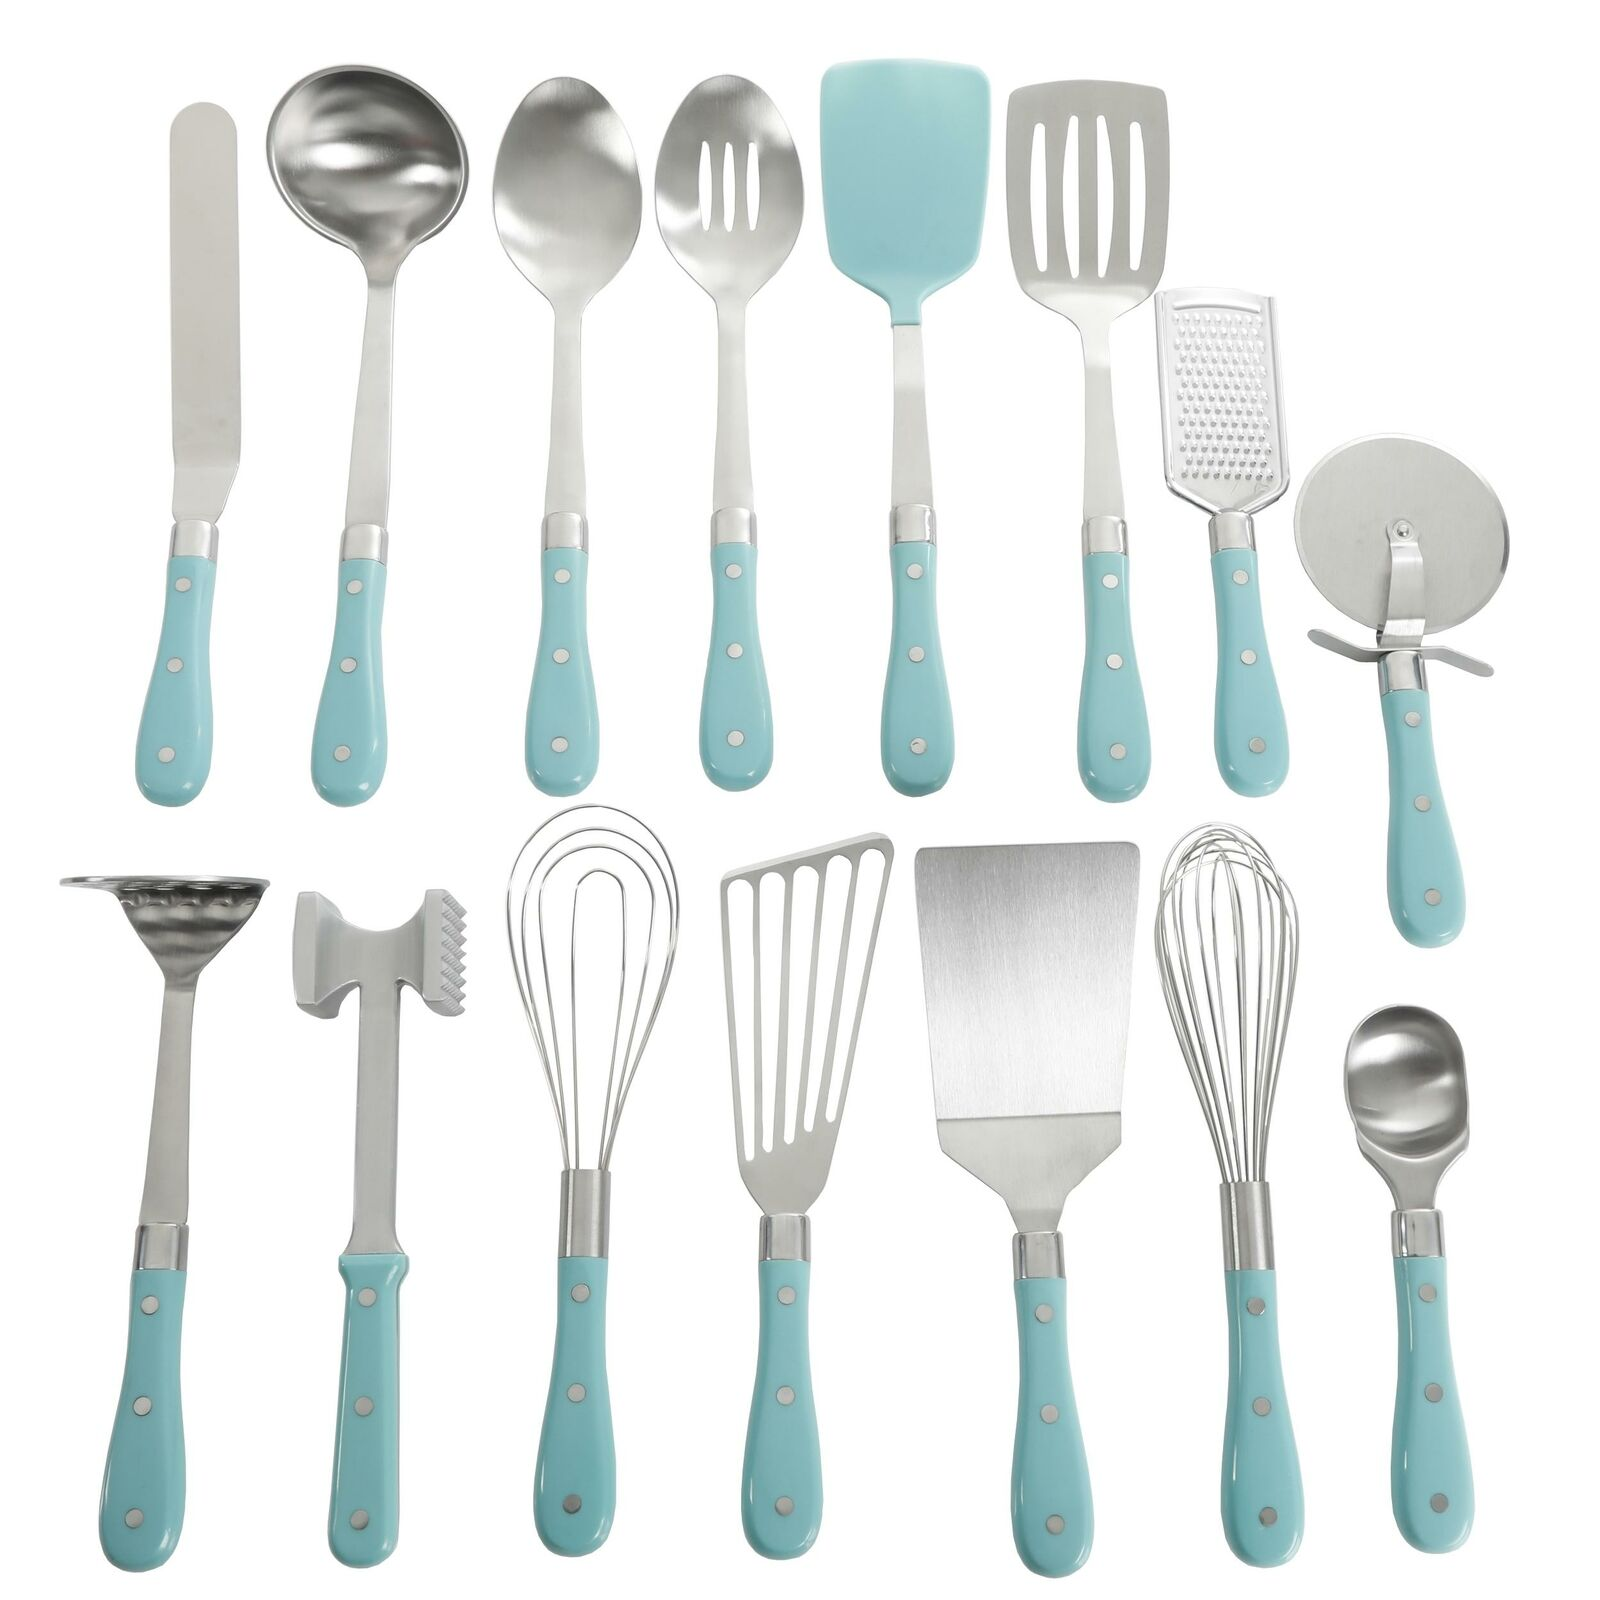 Hullr All In One Kitchen Utensils Knives Set 11 Piece Cooking Tools Gadgets For Sale Ebay